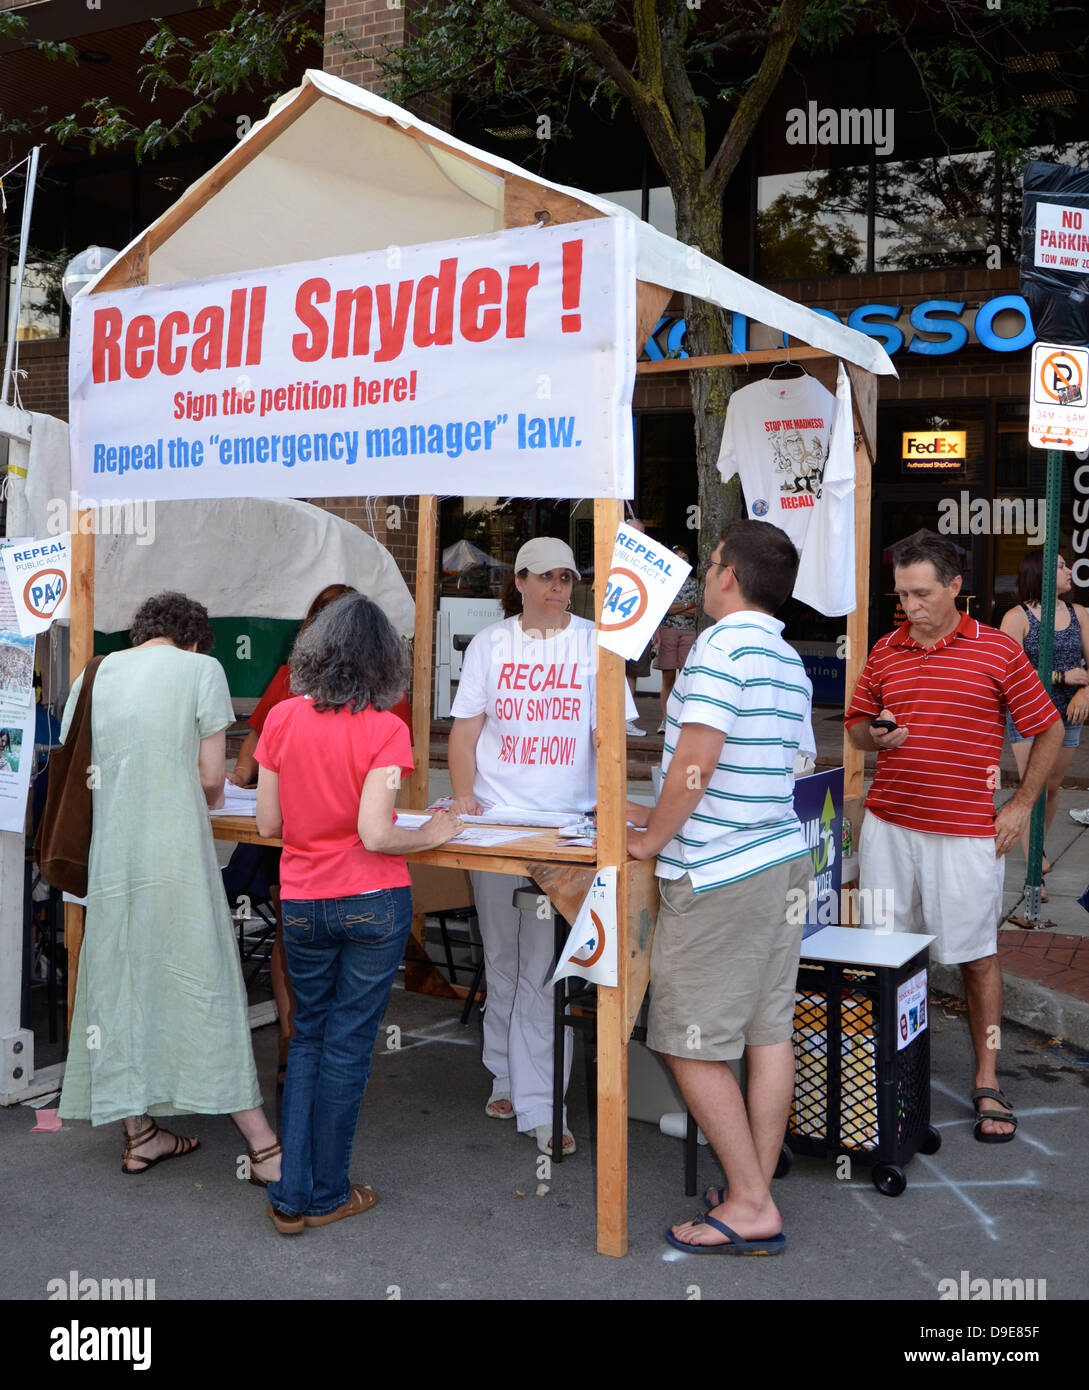 Supporters of an effort to recall Michigan Governor Rick Snyder staff a booth to gather petition signatures - Stock Image